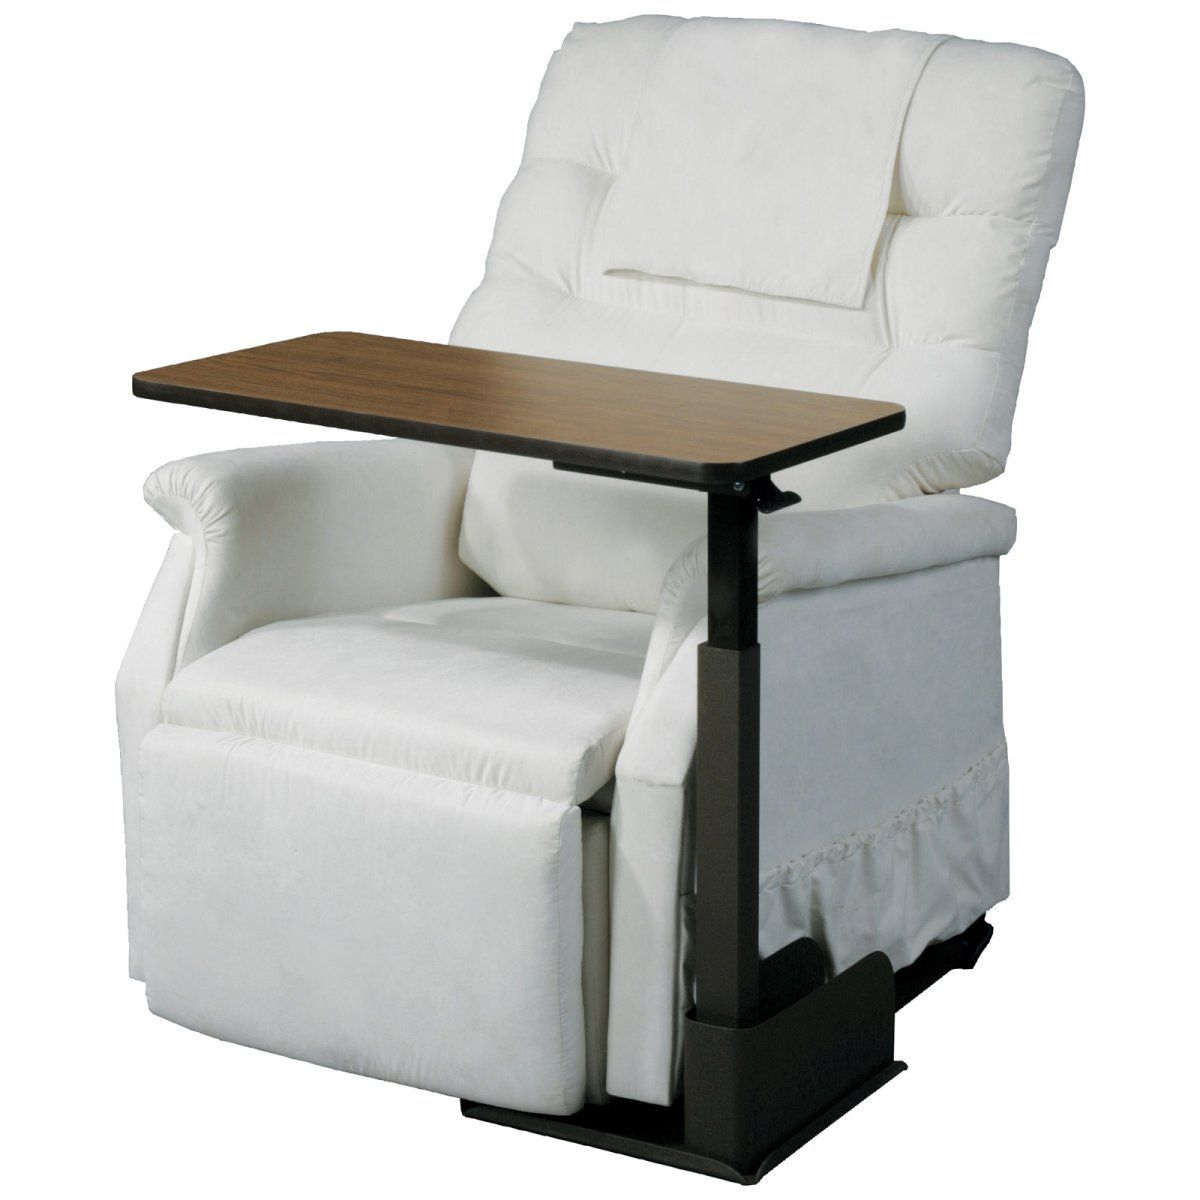 Seat Life Chair Table Overbed Tray Tables At Tv Tray Source